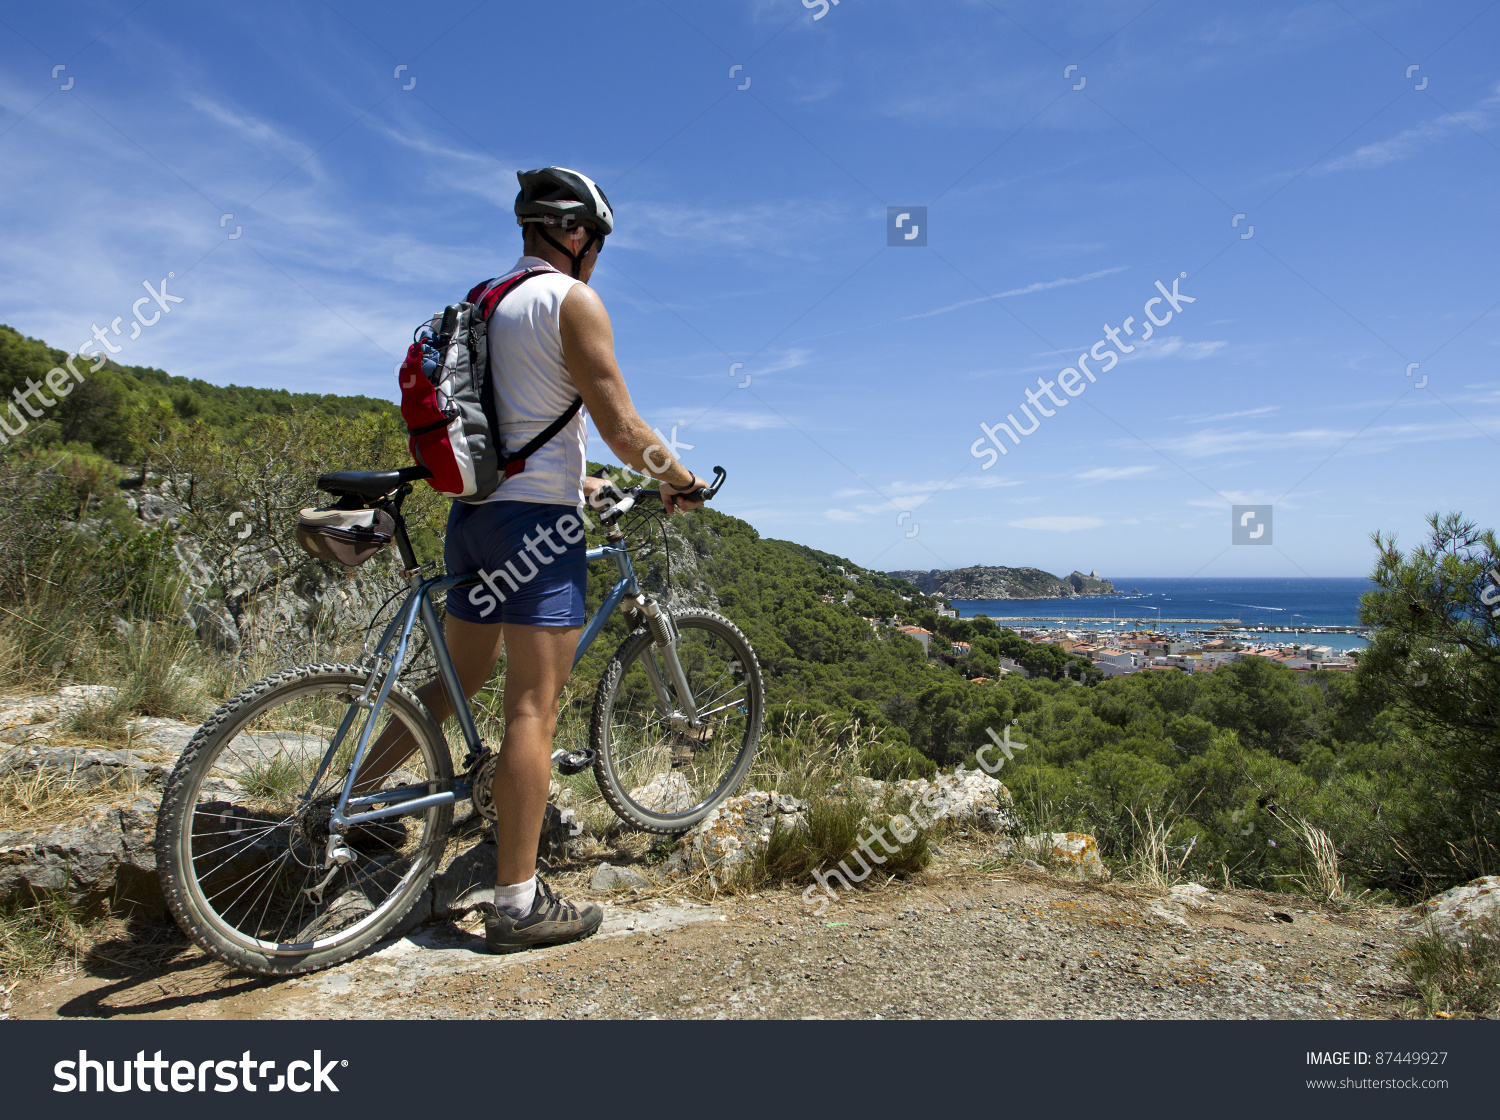 Man On Mountain Bike With View Of Mediterranean Sea In North East.